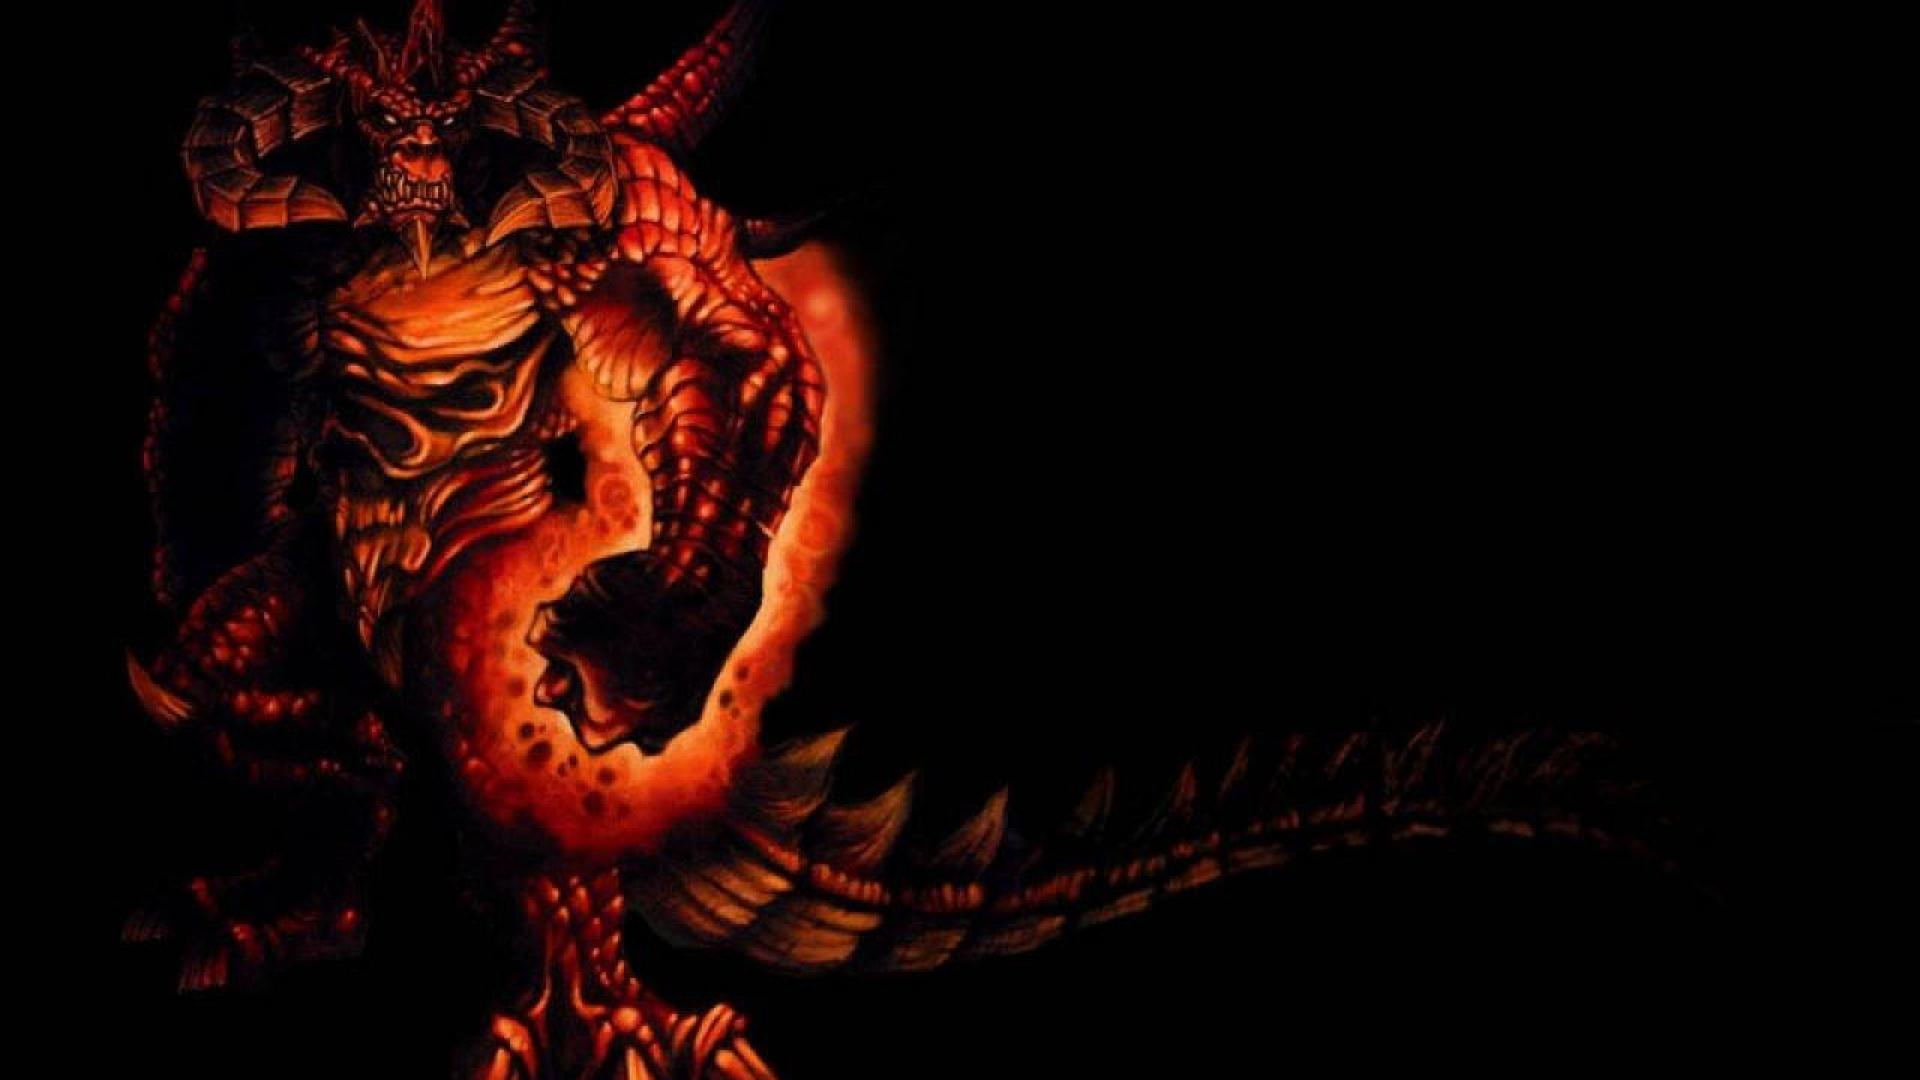 Diablo Wallpapers Photos And Desktop Backgrounds Up To 8k 7680x4320 Resolution